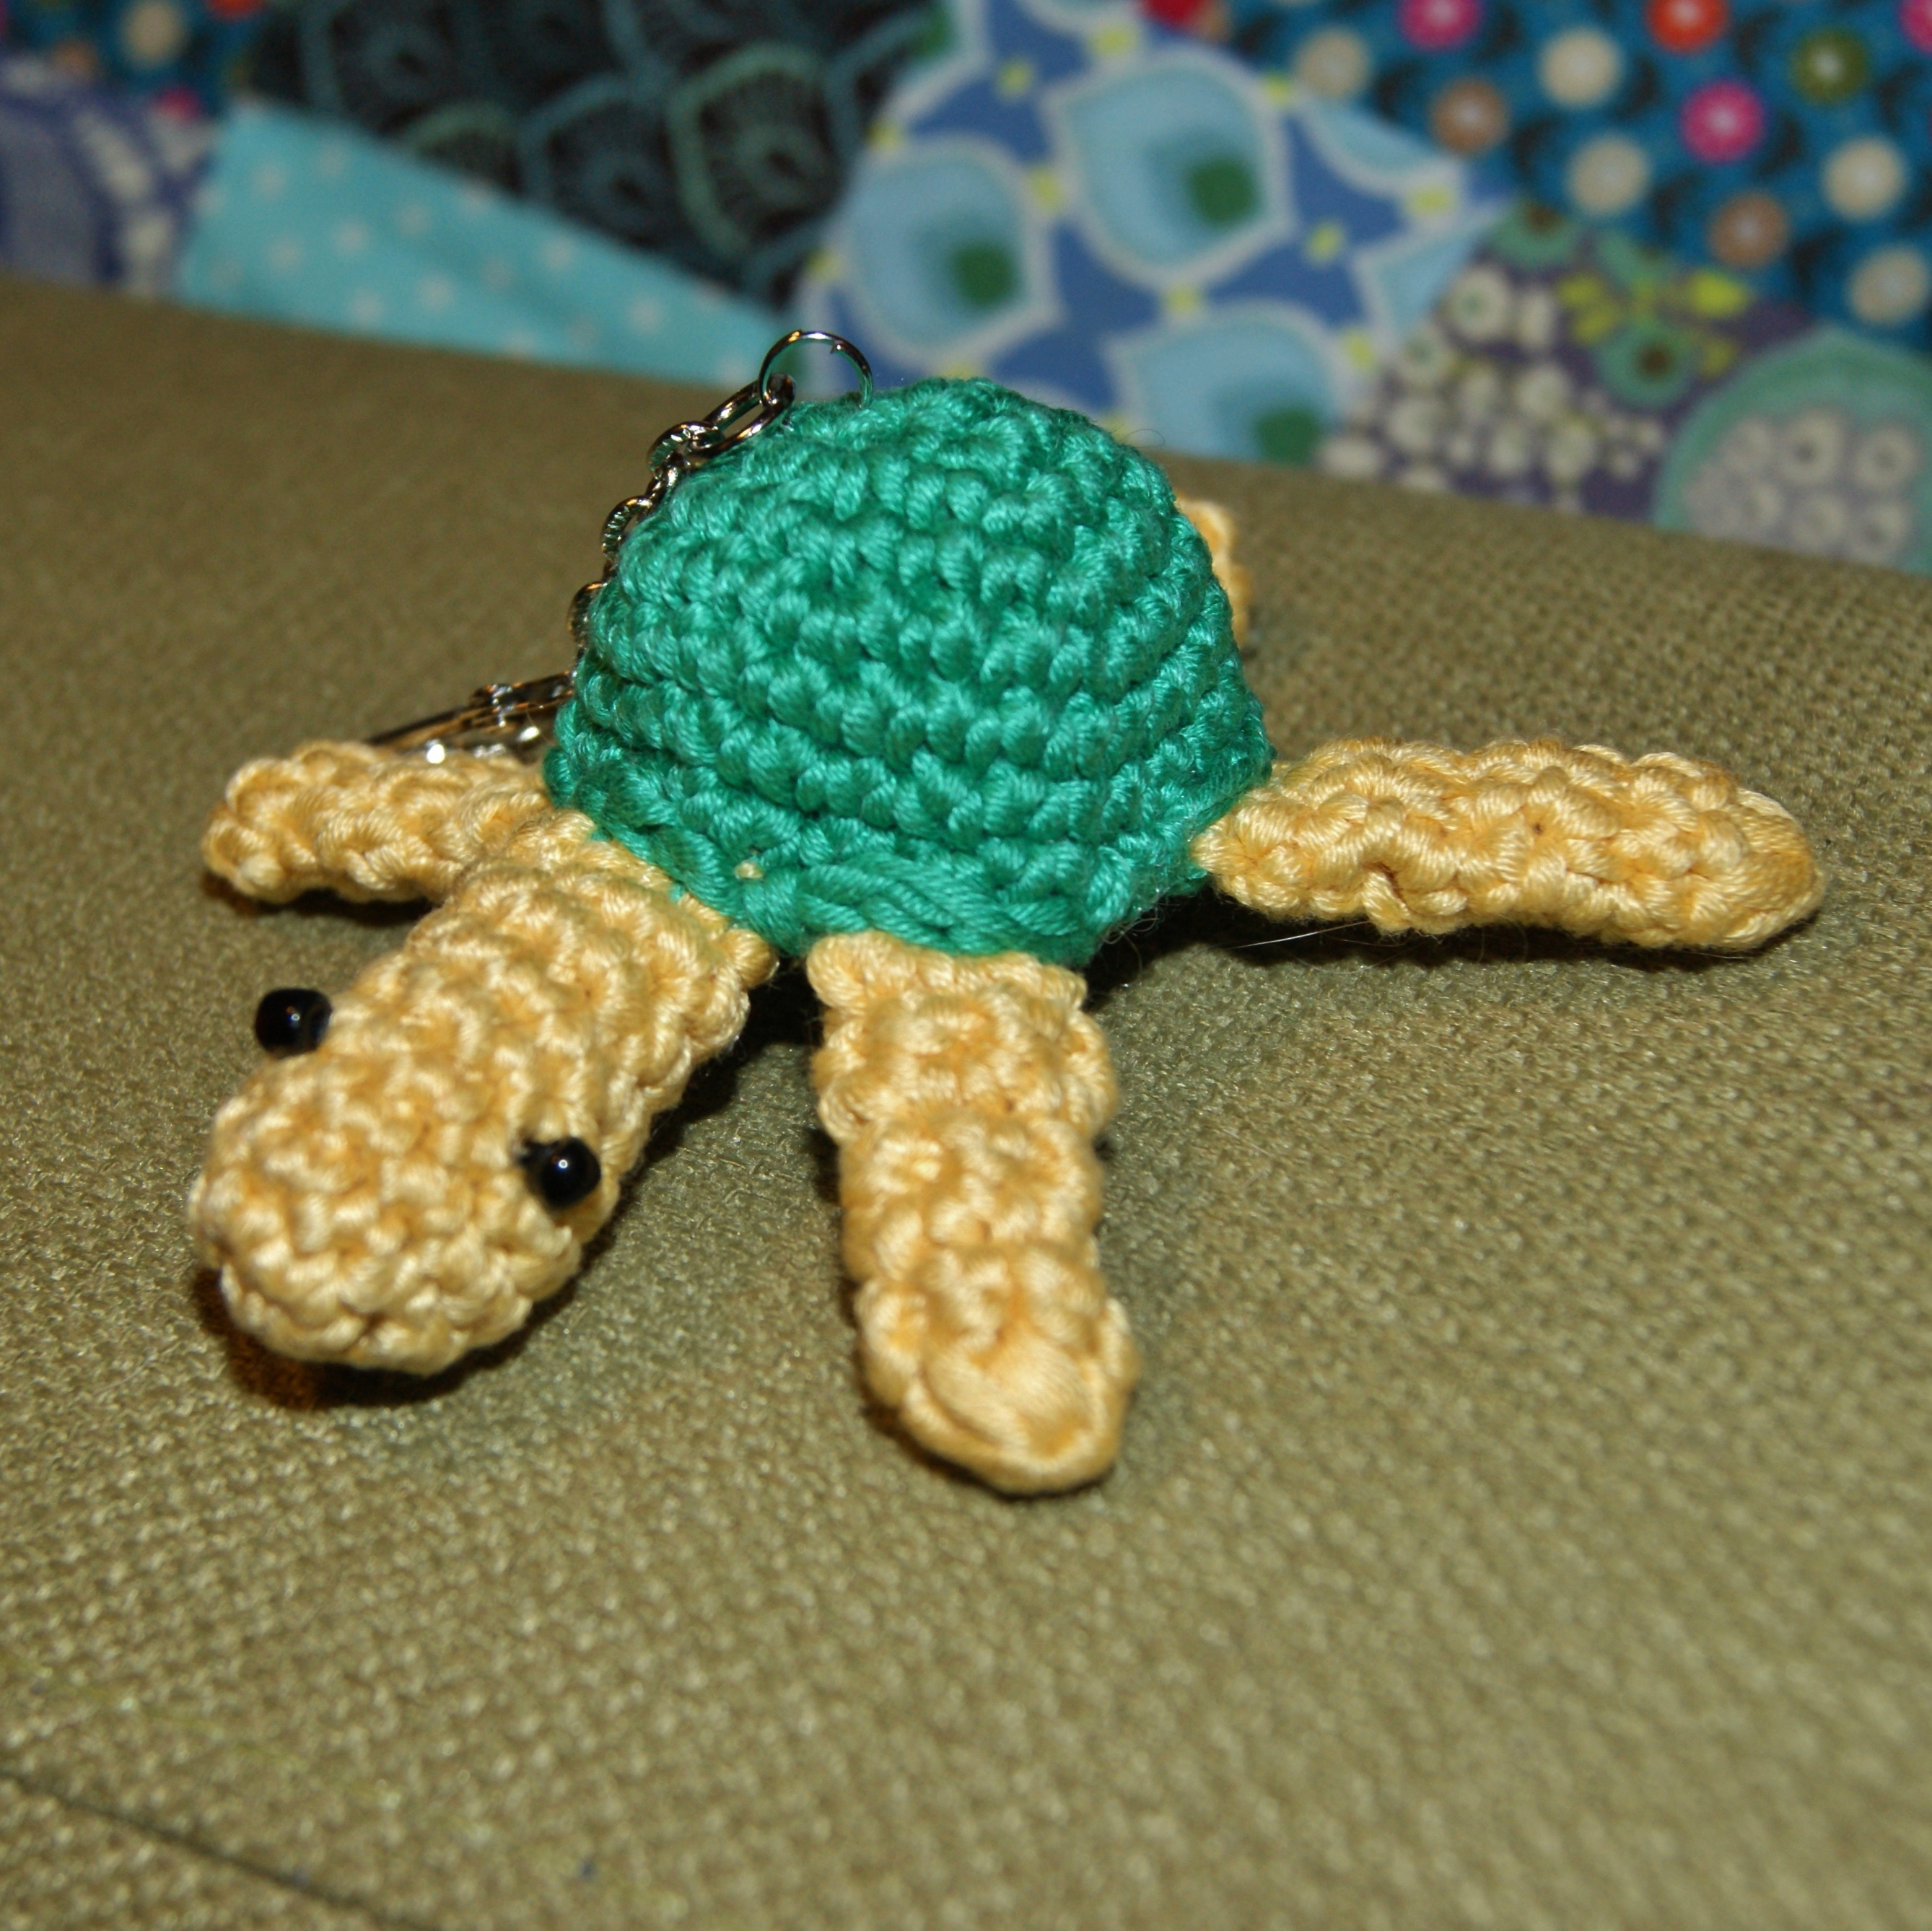 Knitting Eastern European Style : Crochet tea cosies turtles and relearning to knit